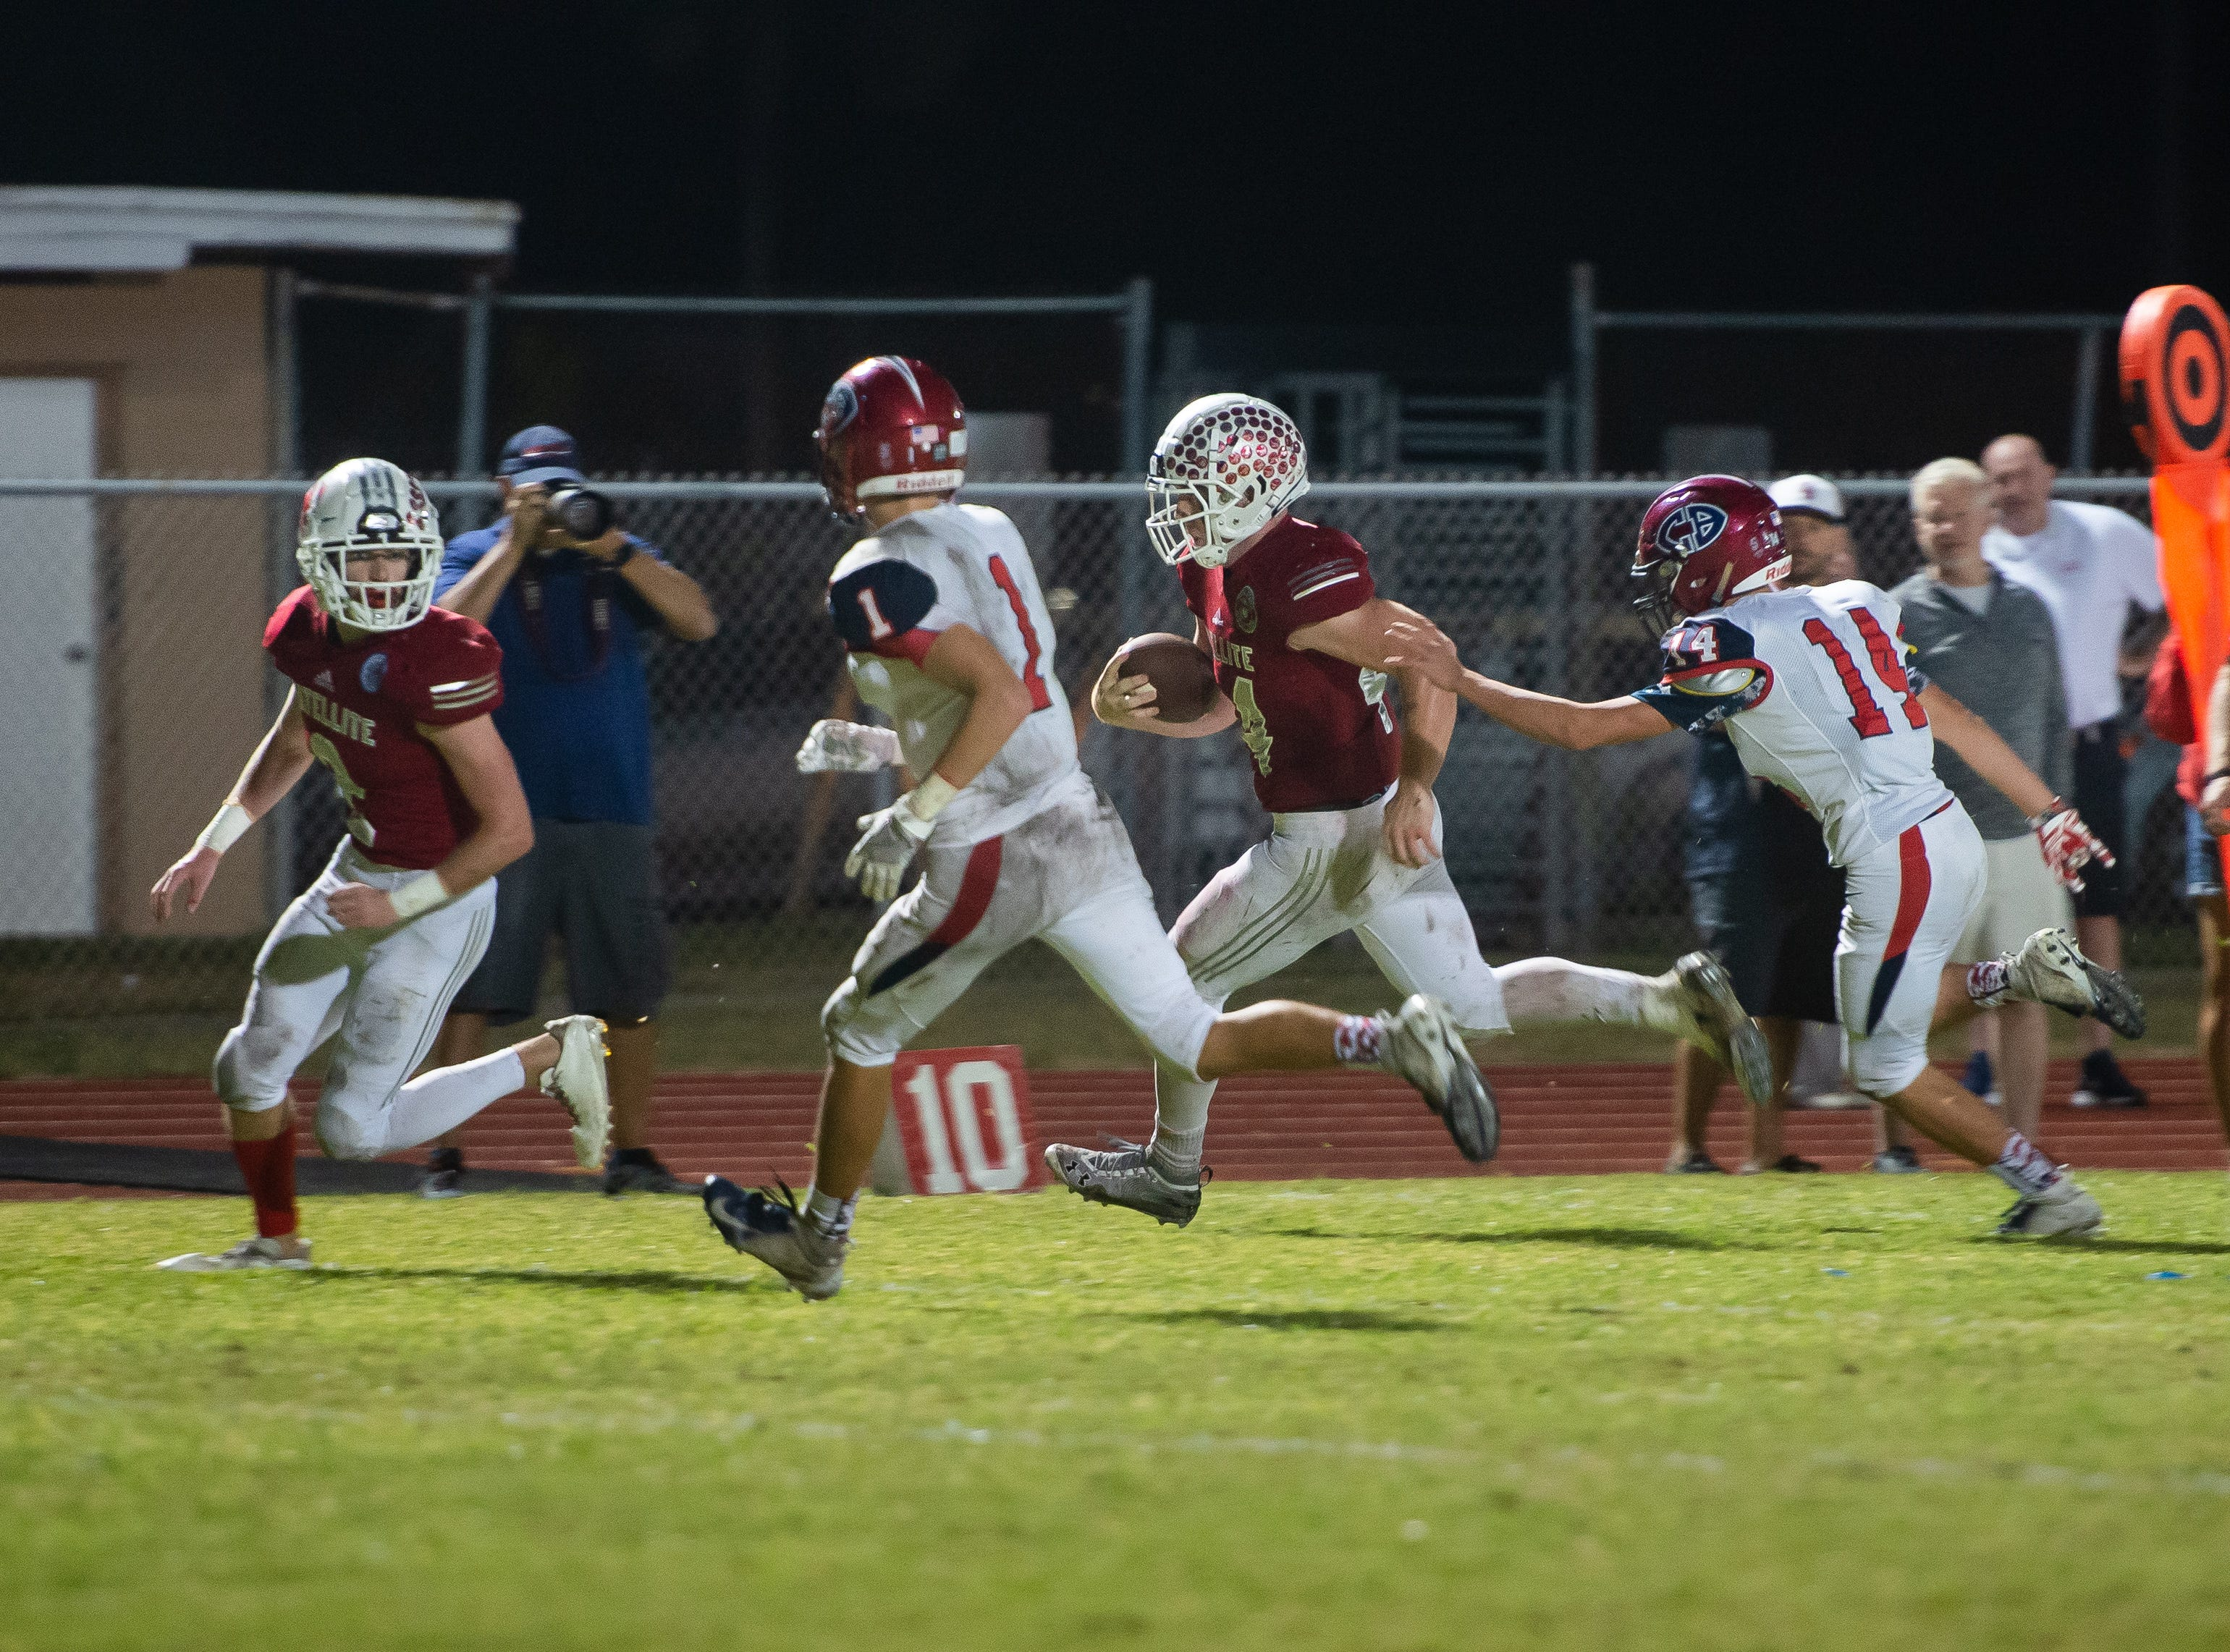 Satellite High's JD Arnold runs in for a touchdown against Cocoa Beach.